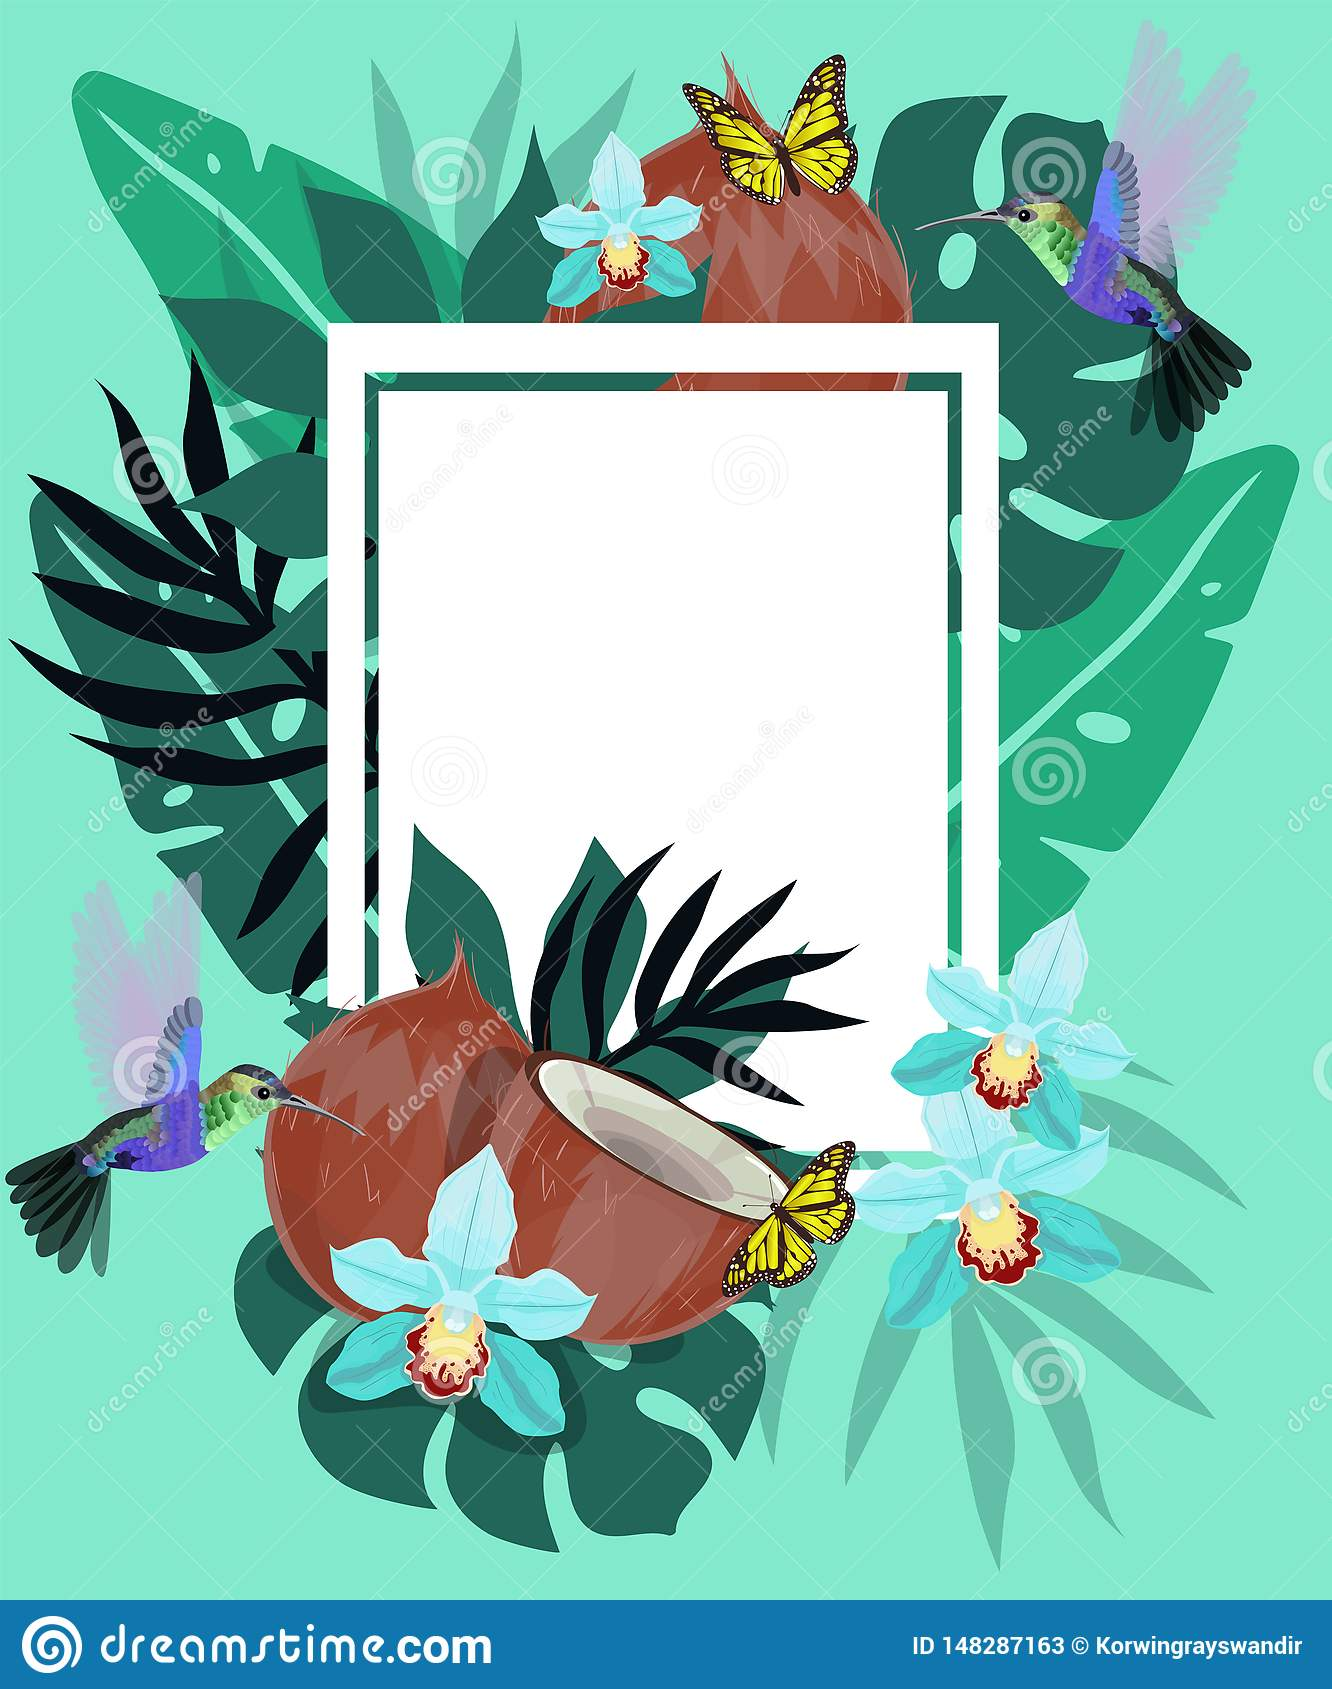 Summer background with hummingbirds, coconut, butterflies and blue orchid. Floral frame with little hummingbirds flying near